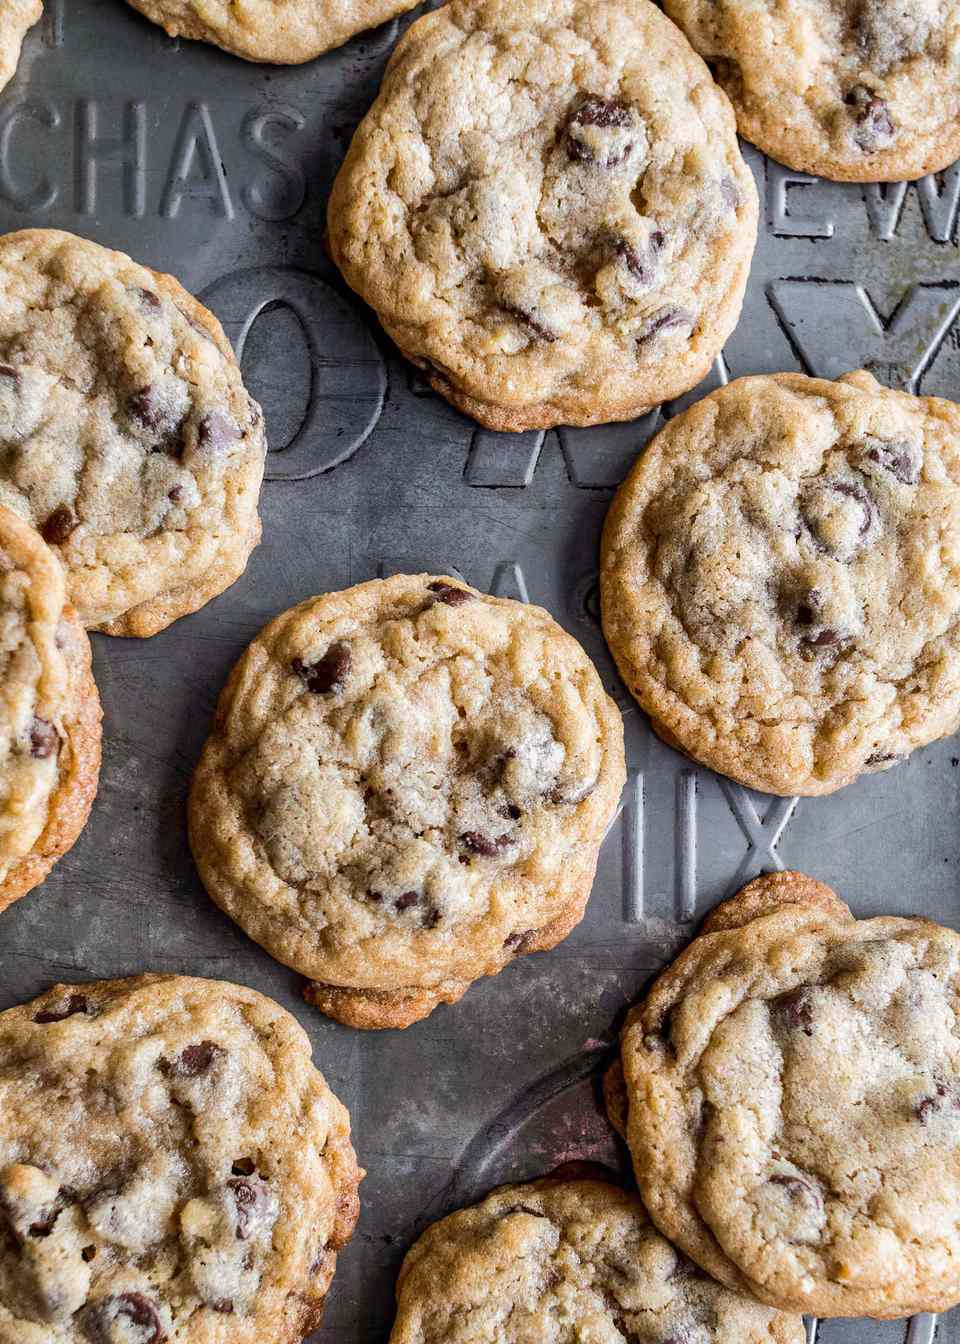 Overhead view of chocolate chip cookies.